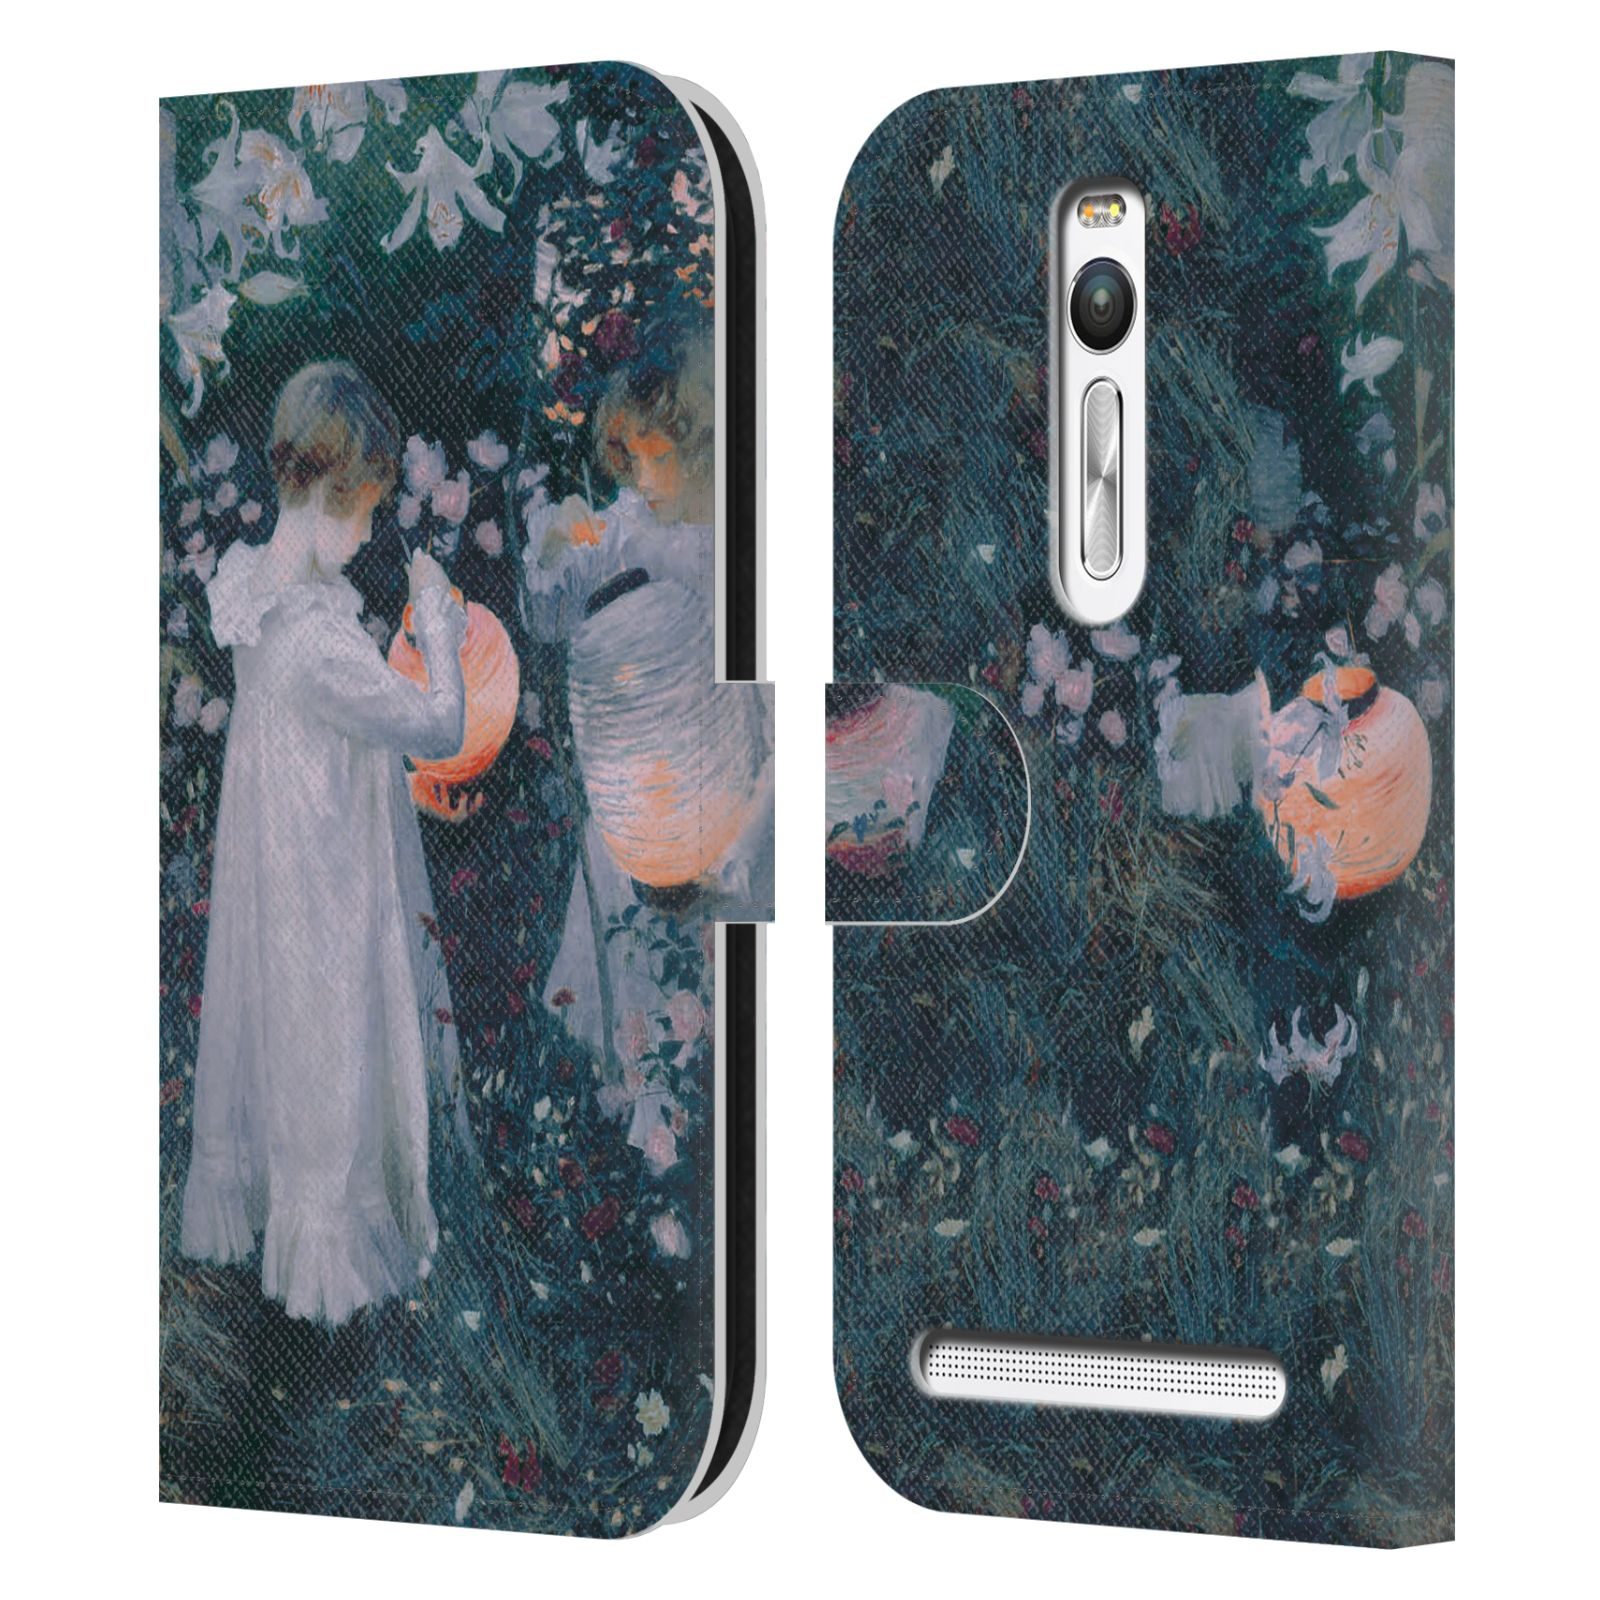 MASTERS-COLLECTION-PAINTINGS-2-LEATHER-BOOK-WALLET-CASE-FOR-ASUS-ZENFONE-PHONES